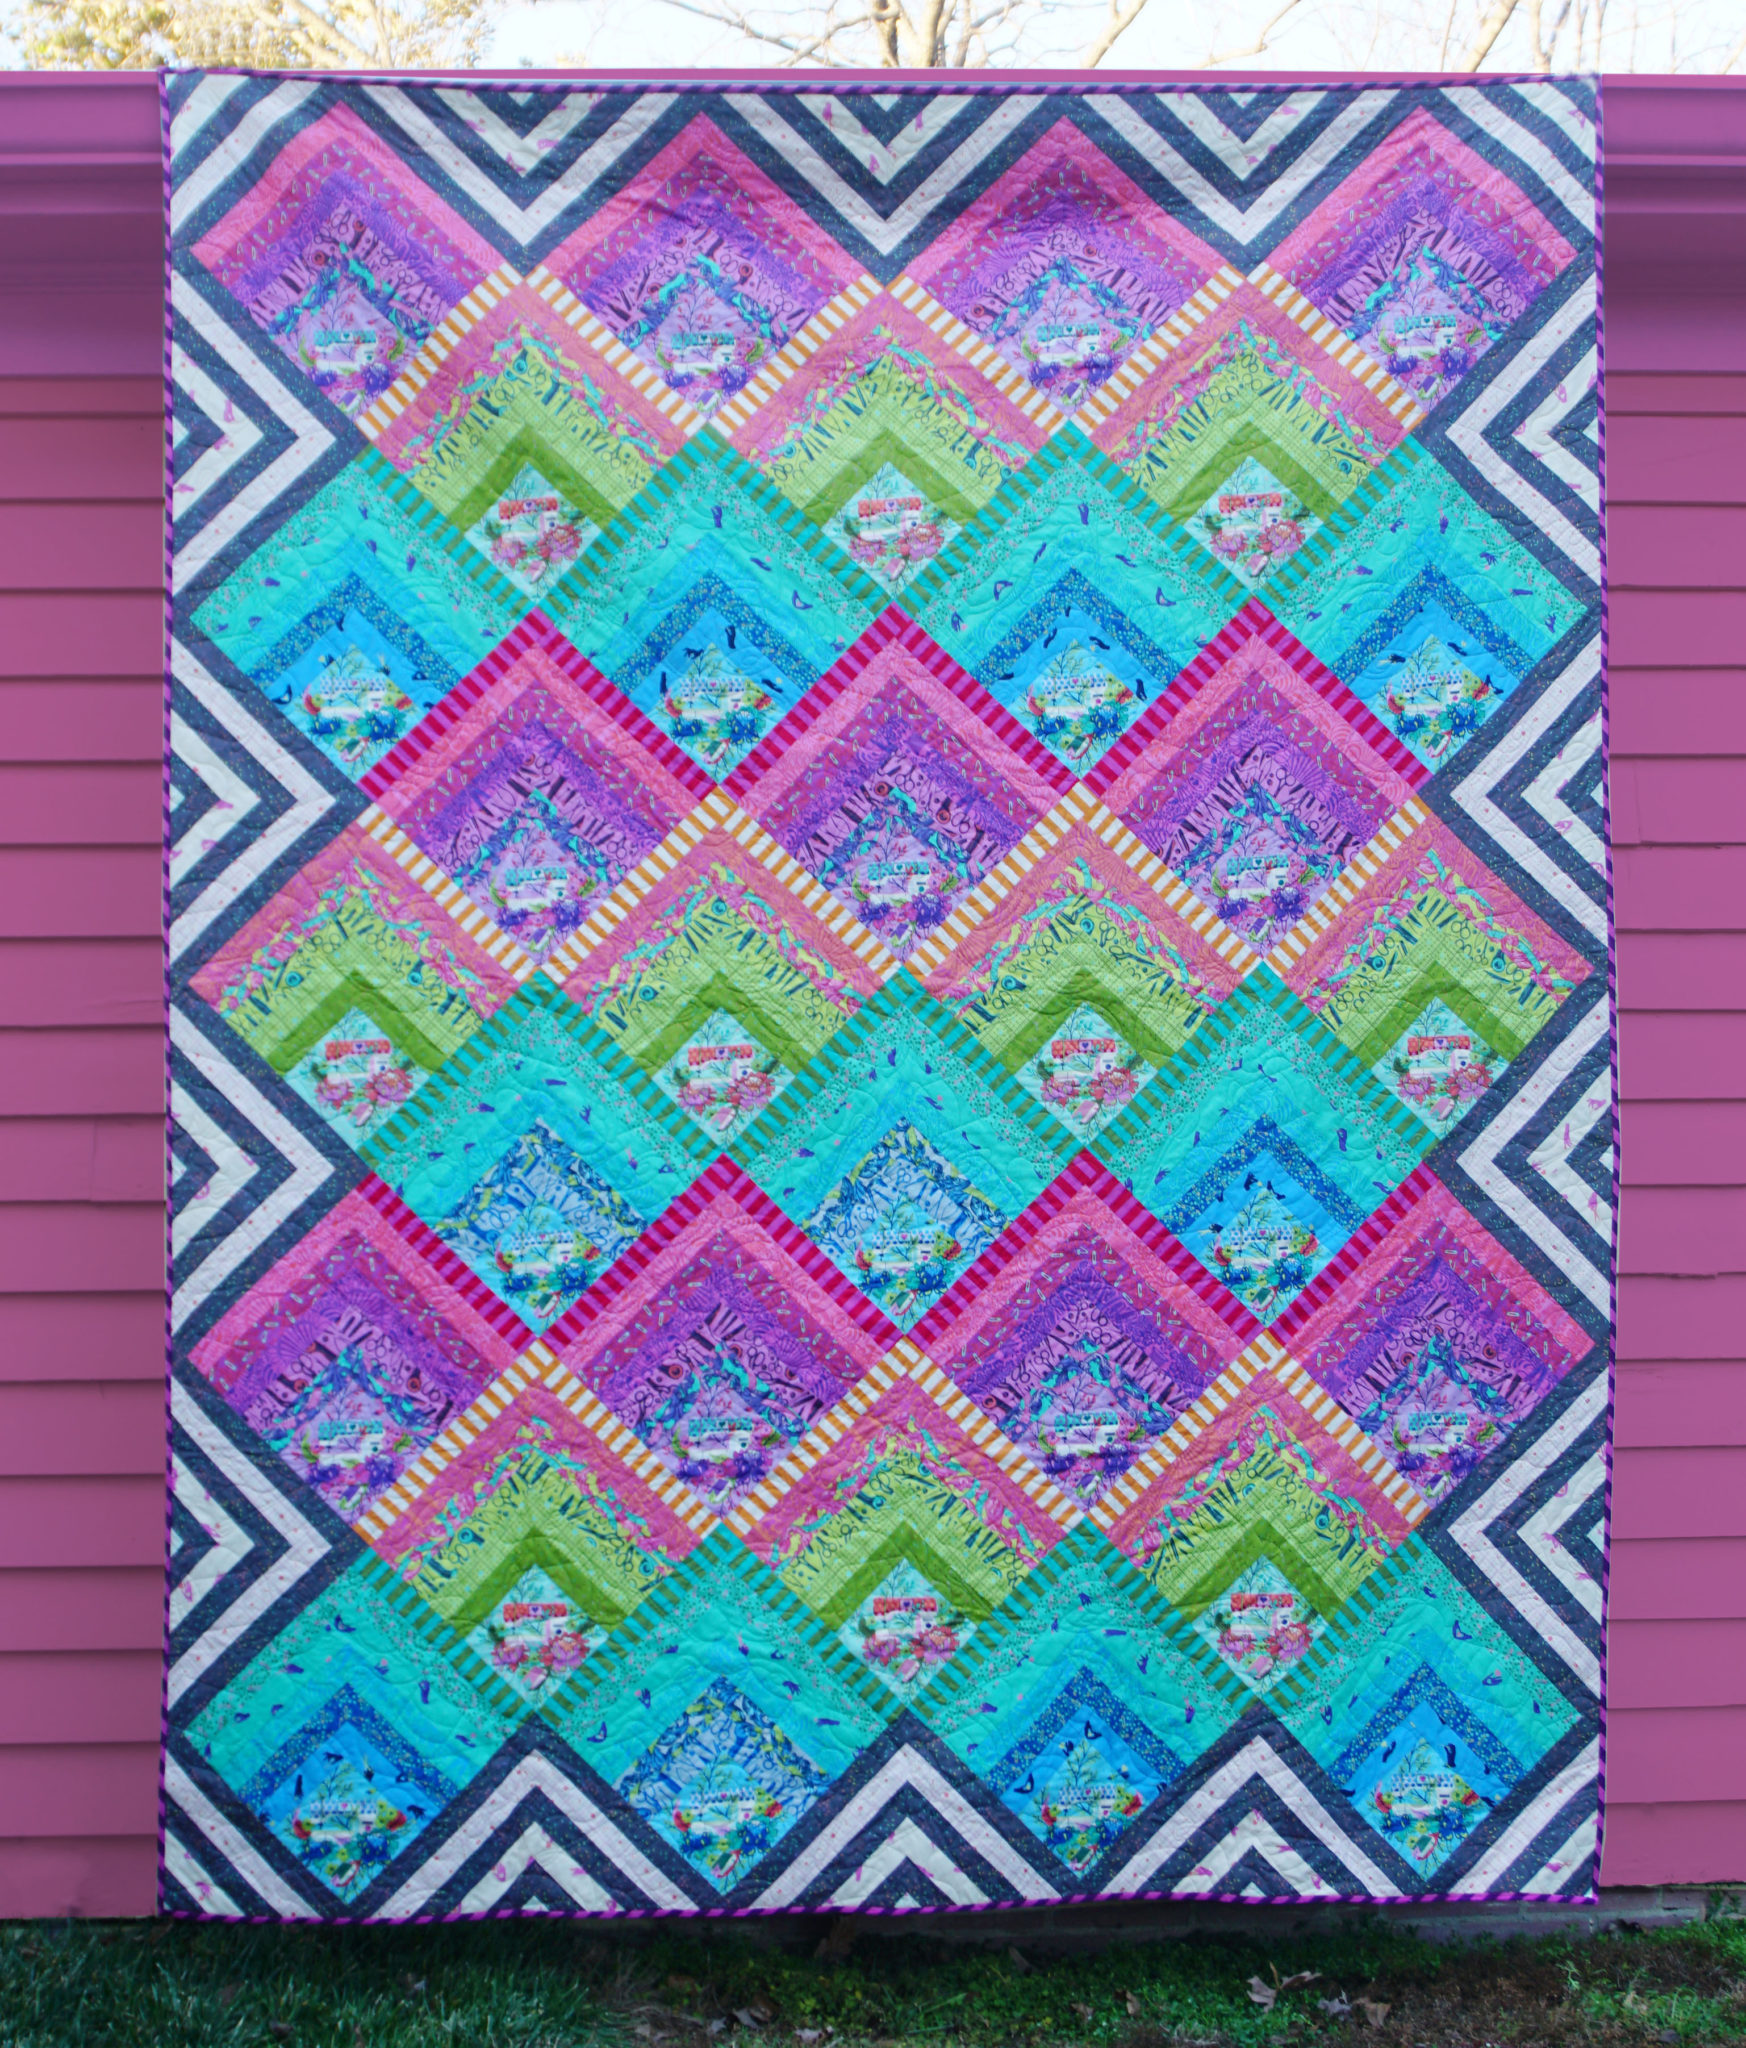 Tula Pink Electric Slide Quilt Featuring Homemade